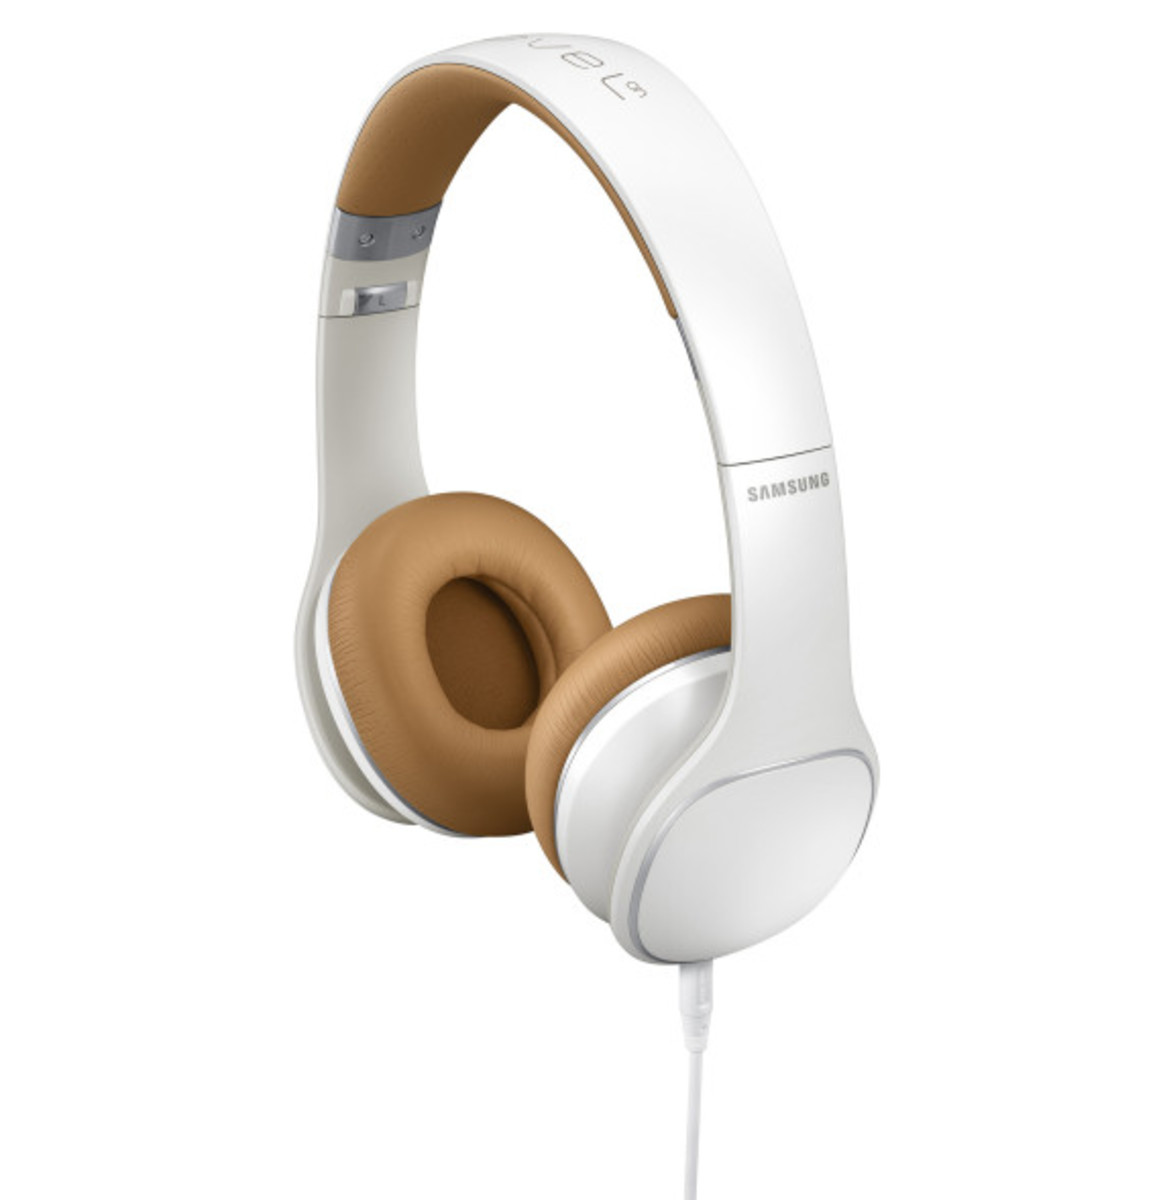 samsung-premium-mobile-audio-line-06